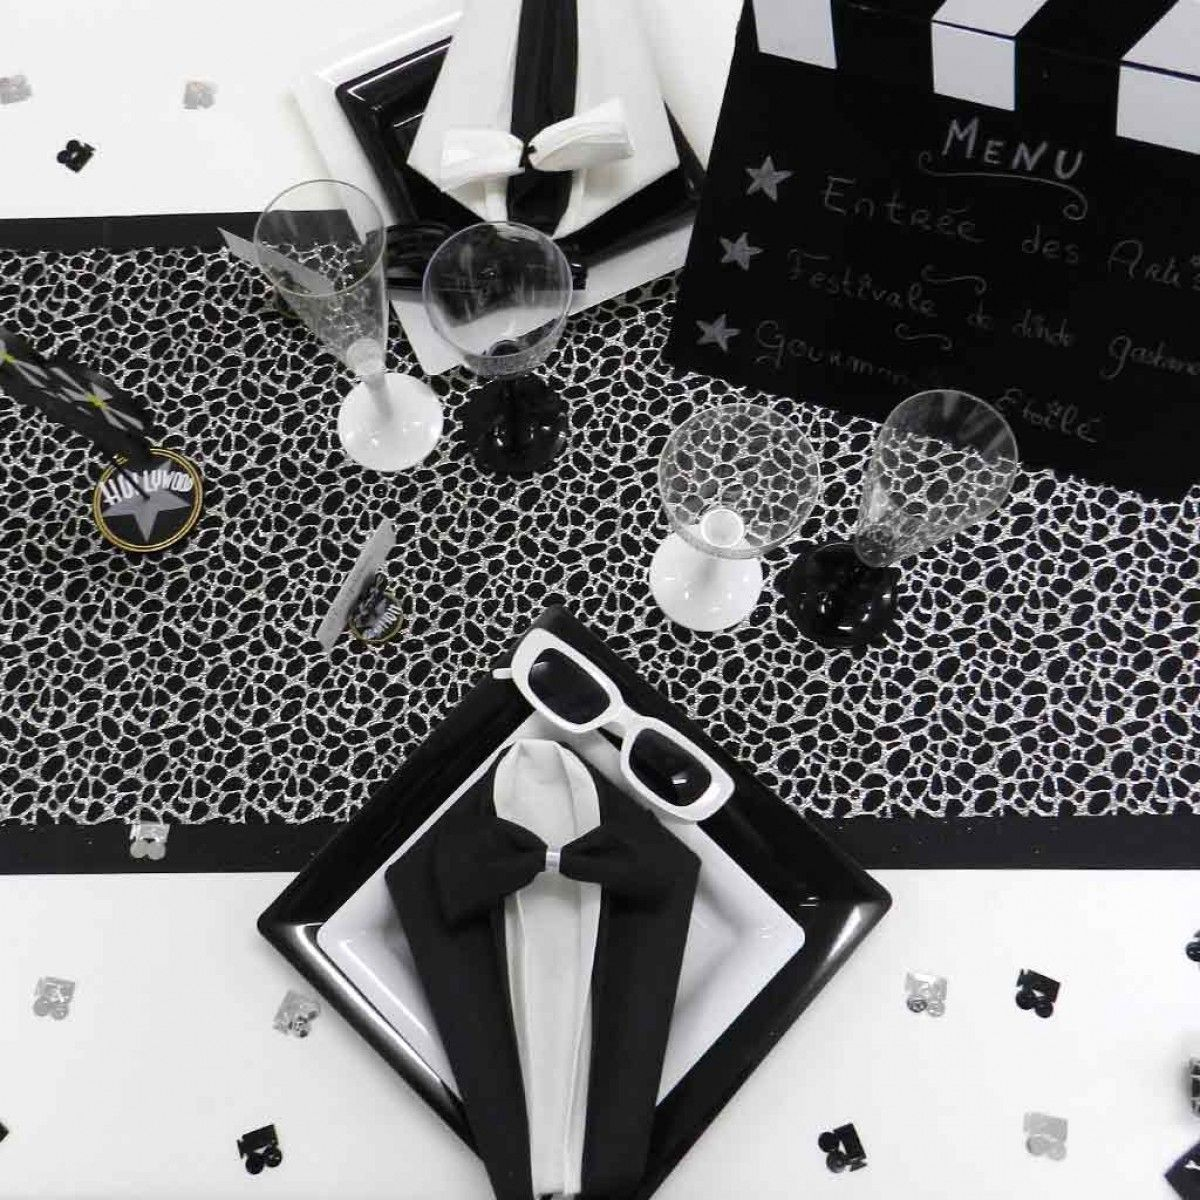 d coration de table sur le th me noir et blanc. Black Bedroom Furniture Sets. Home Design Ideas